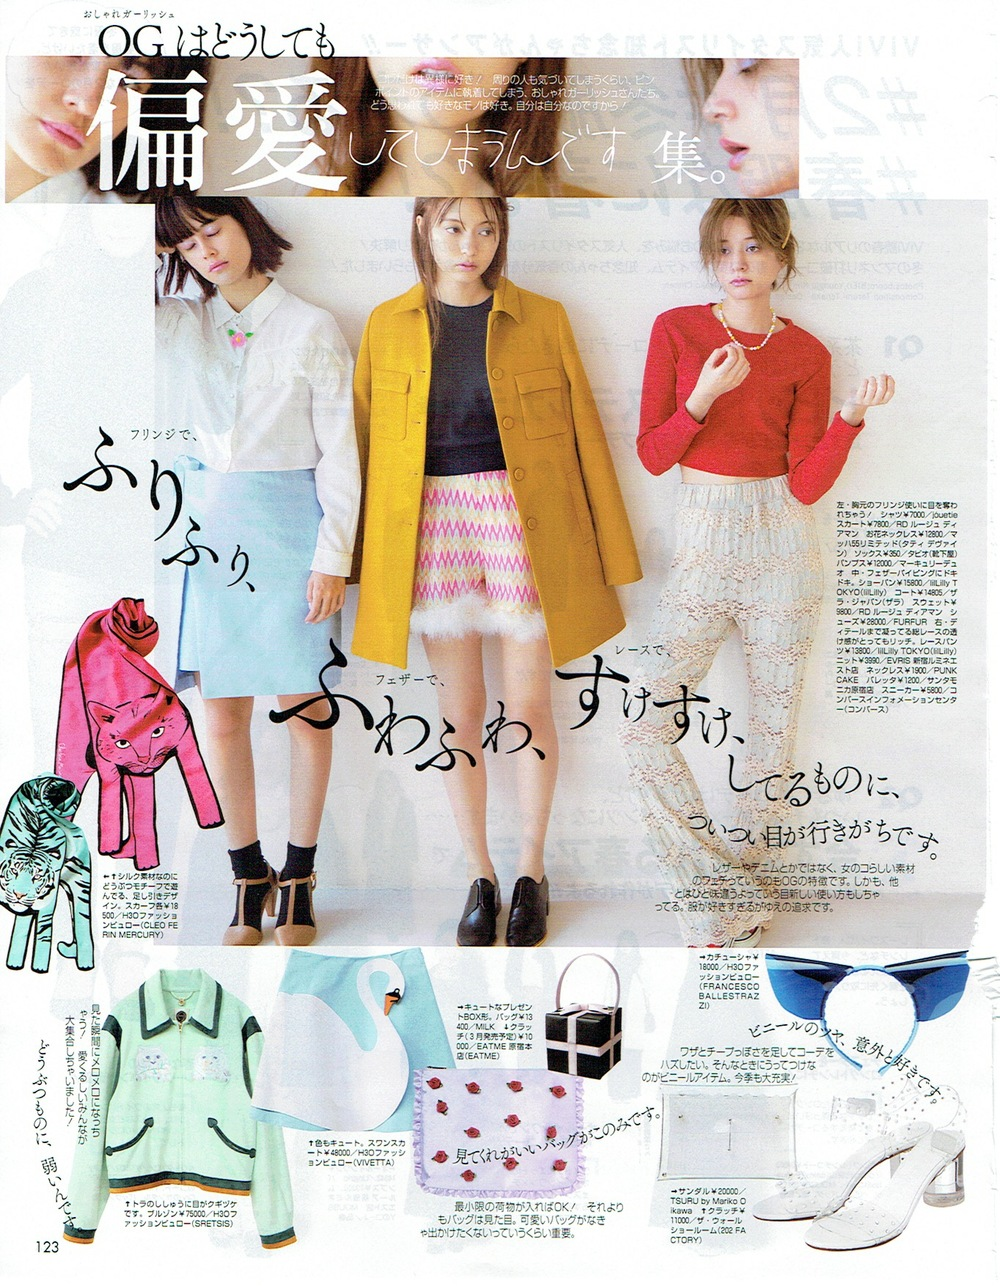 Designer Silk Scarves as seen in ViVi Magazine